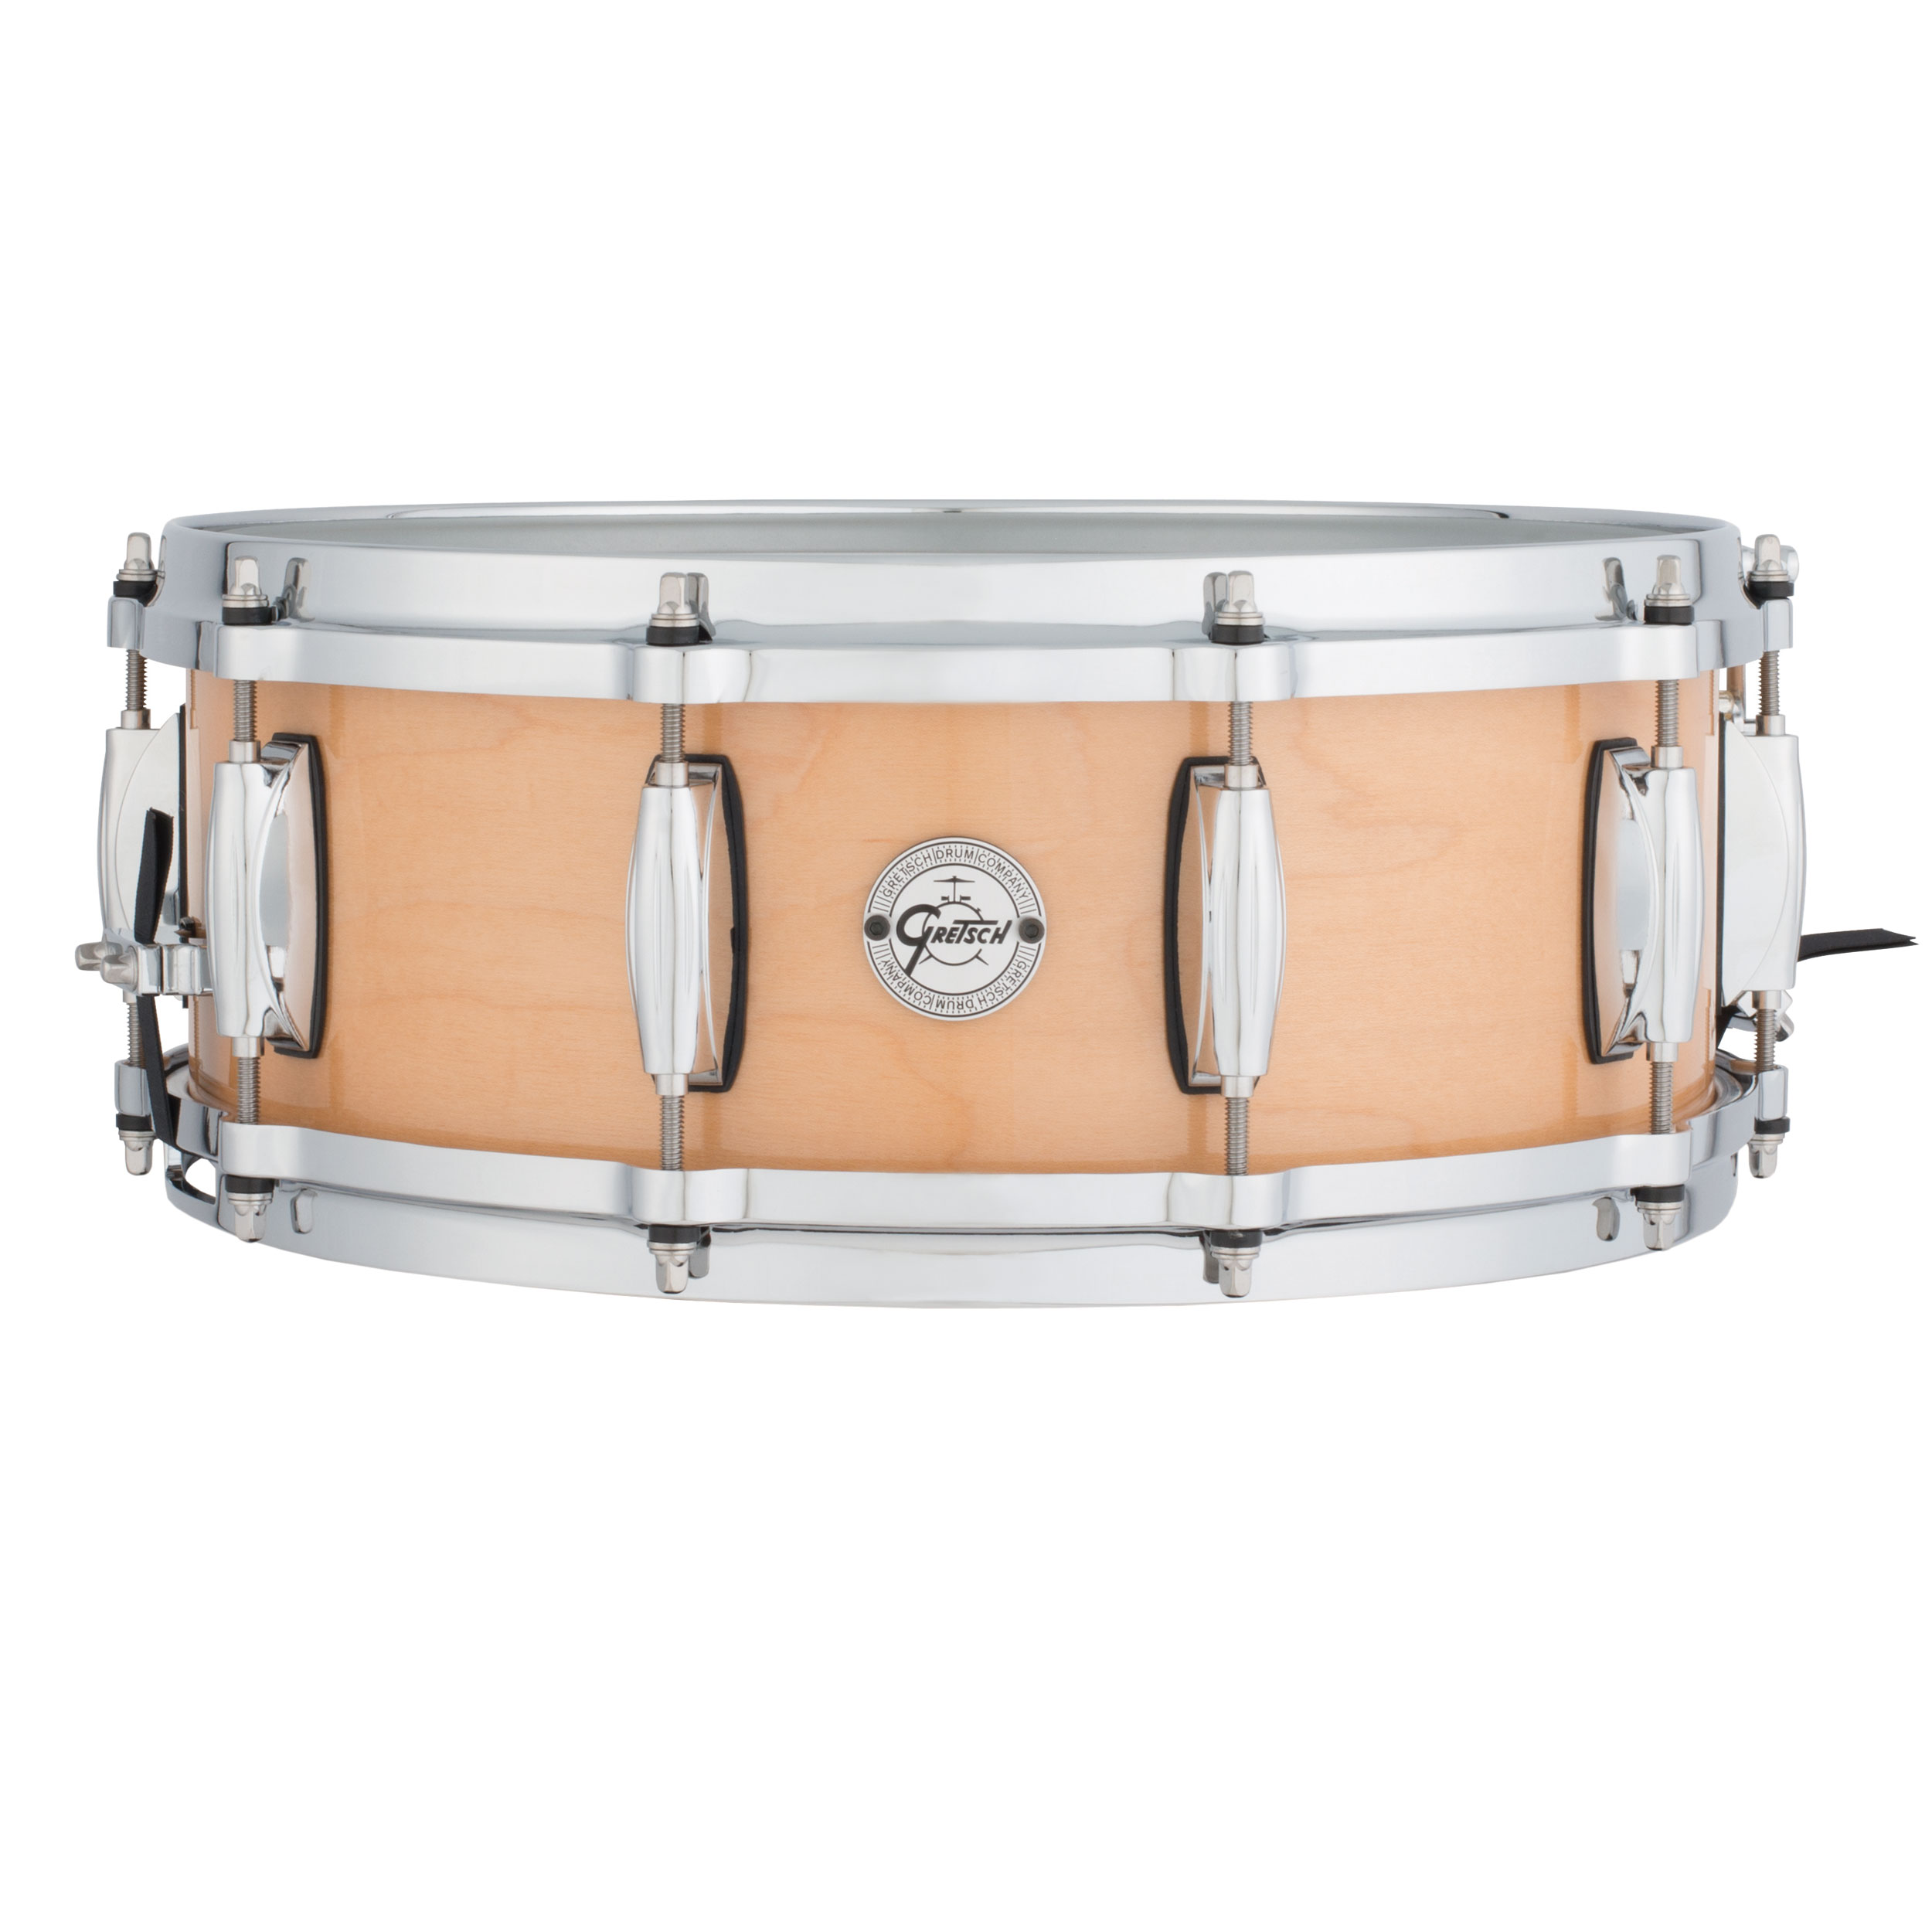 "Gretsch 5"" x 14"" Silver Series Maple Snare Drum"